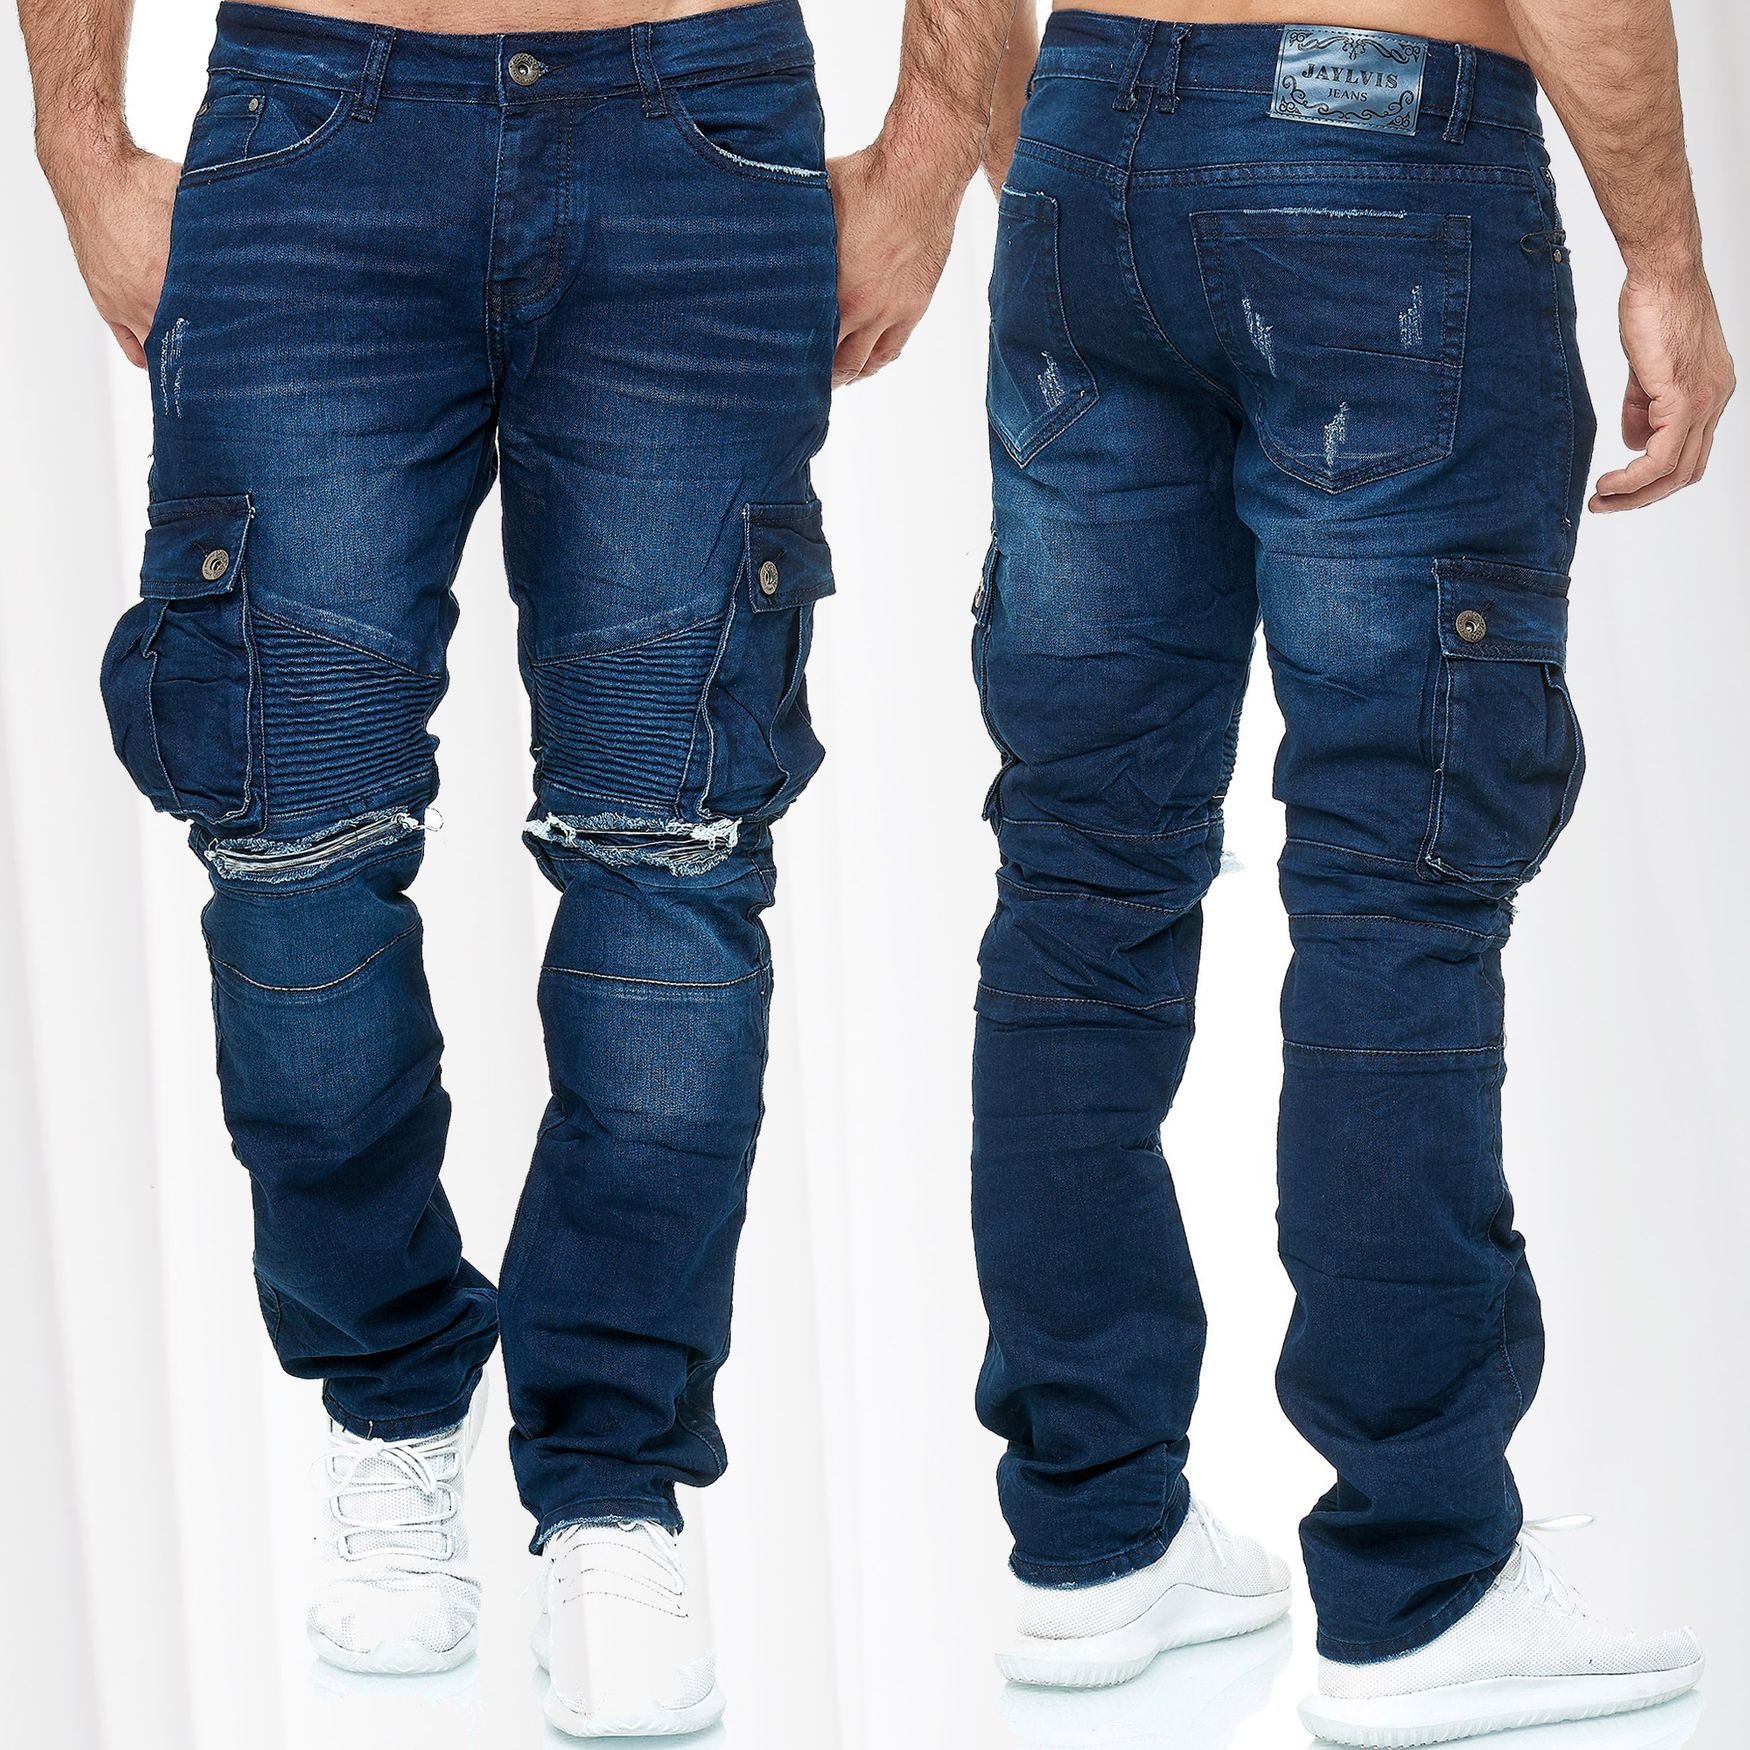 Hommes Jeans Regular Fit Pantalon Used stretch grande taille w34-w46 Plus Size stretch